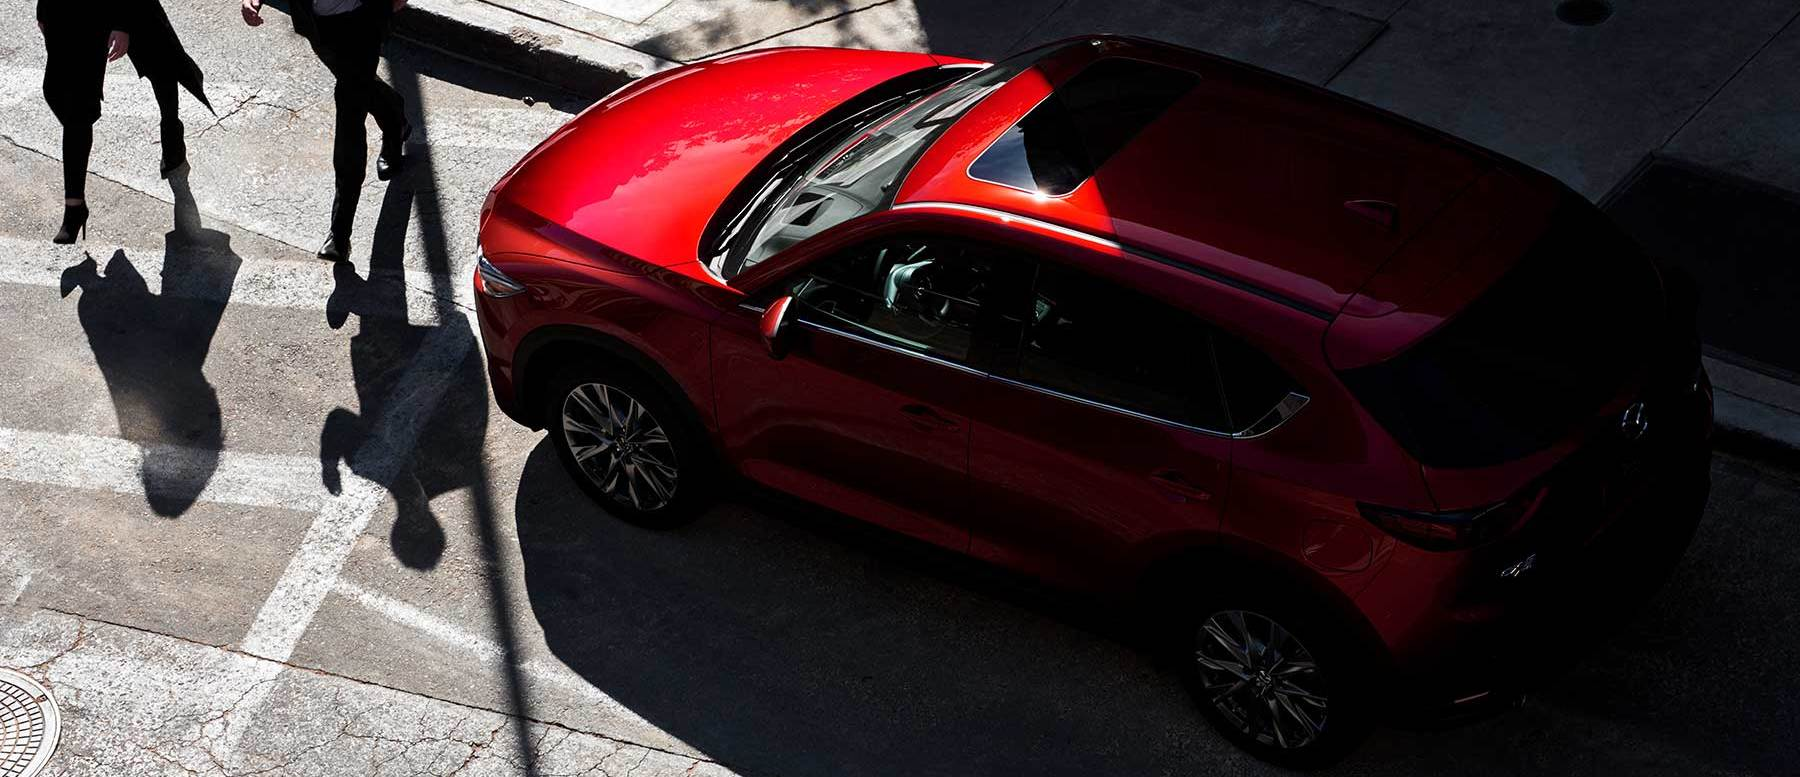 2019 Mazda CX-5 Leasing near Covington, GA